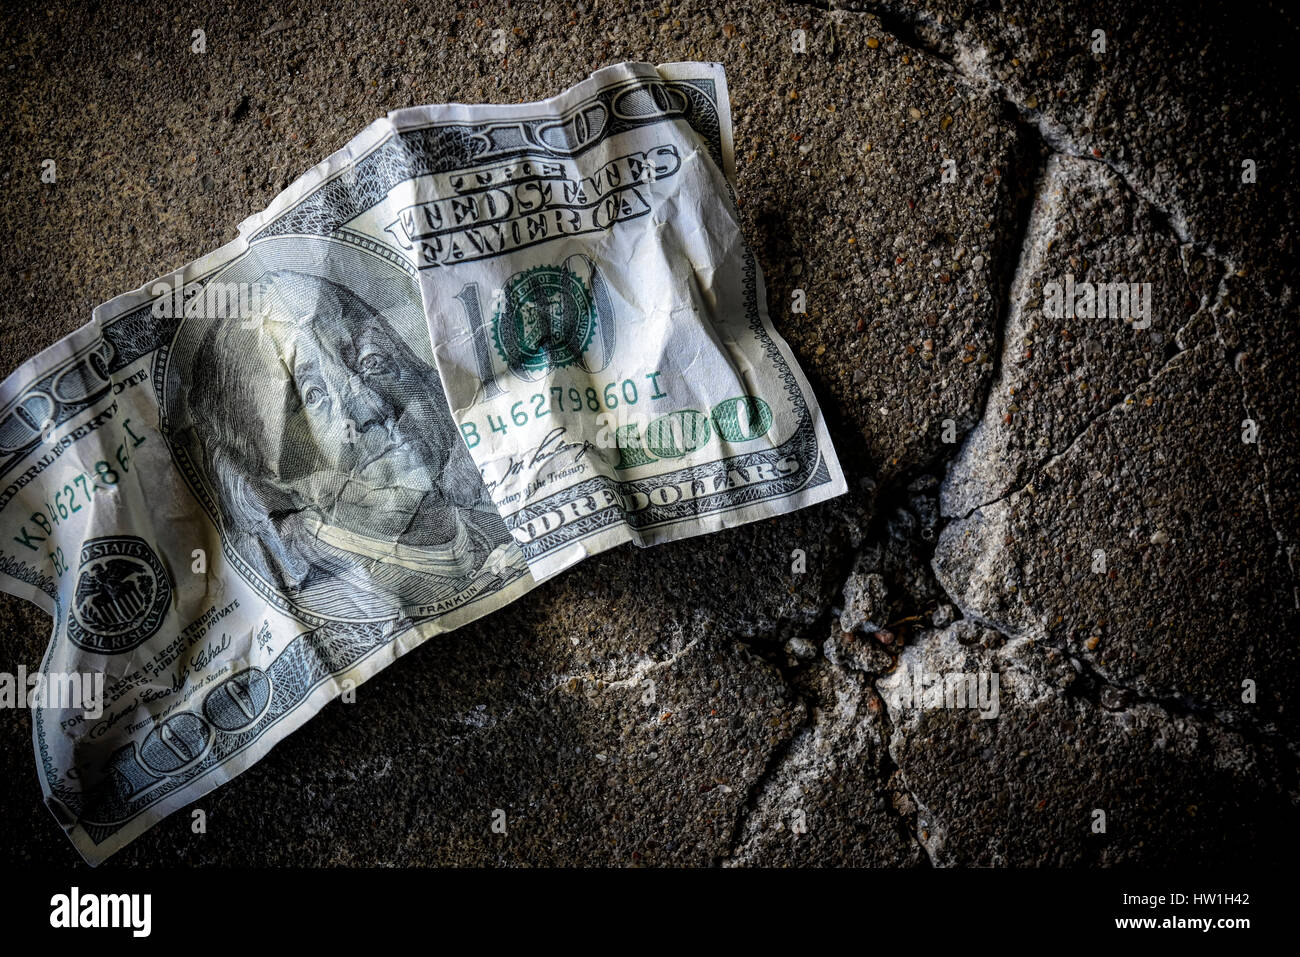 United States one hundred dollar bill on dirty ground - Stock Image